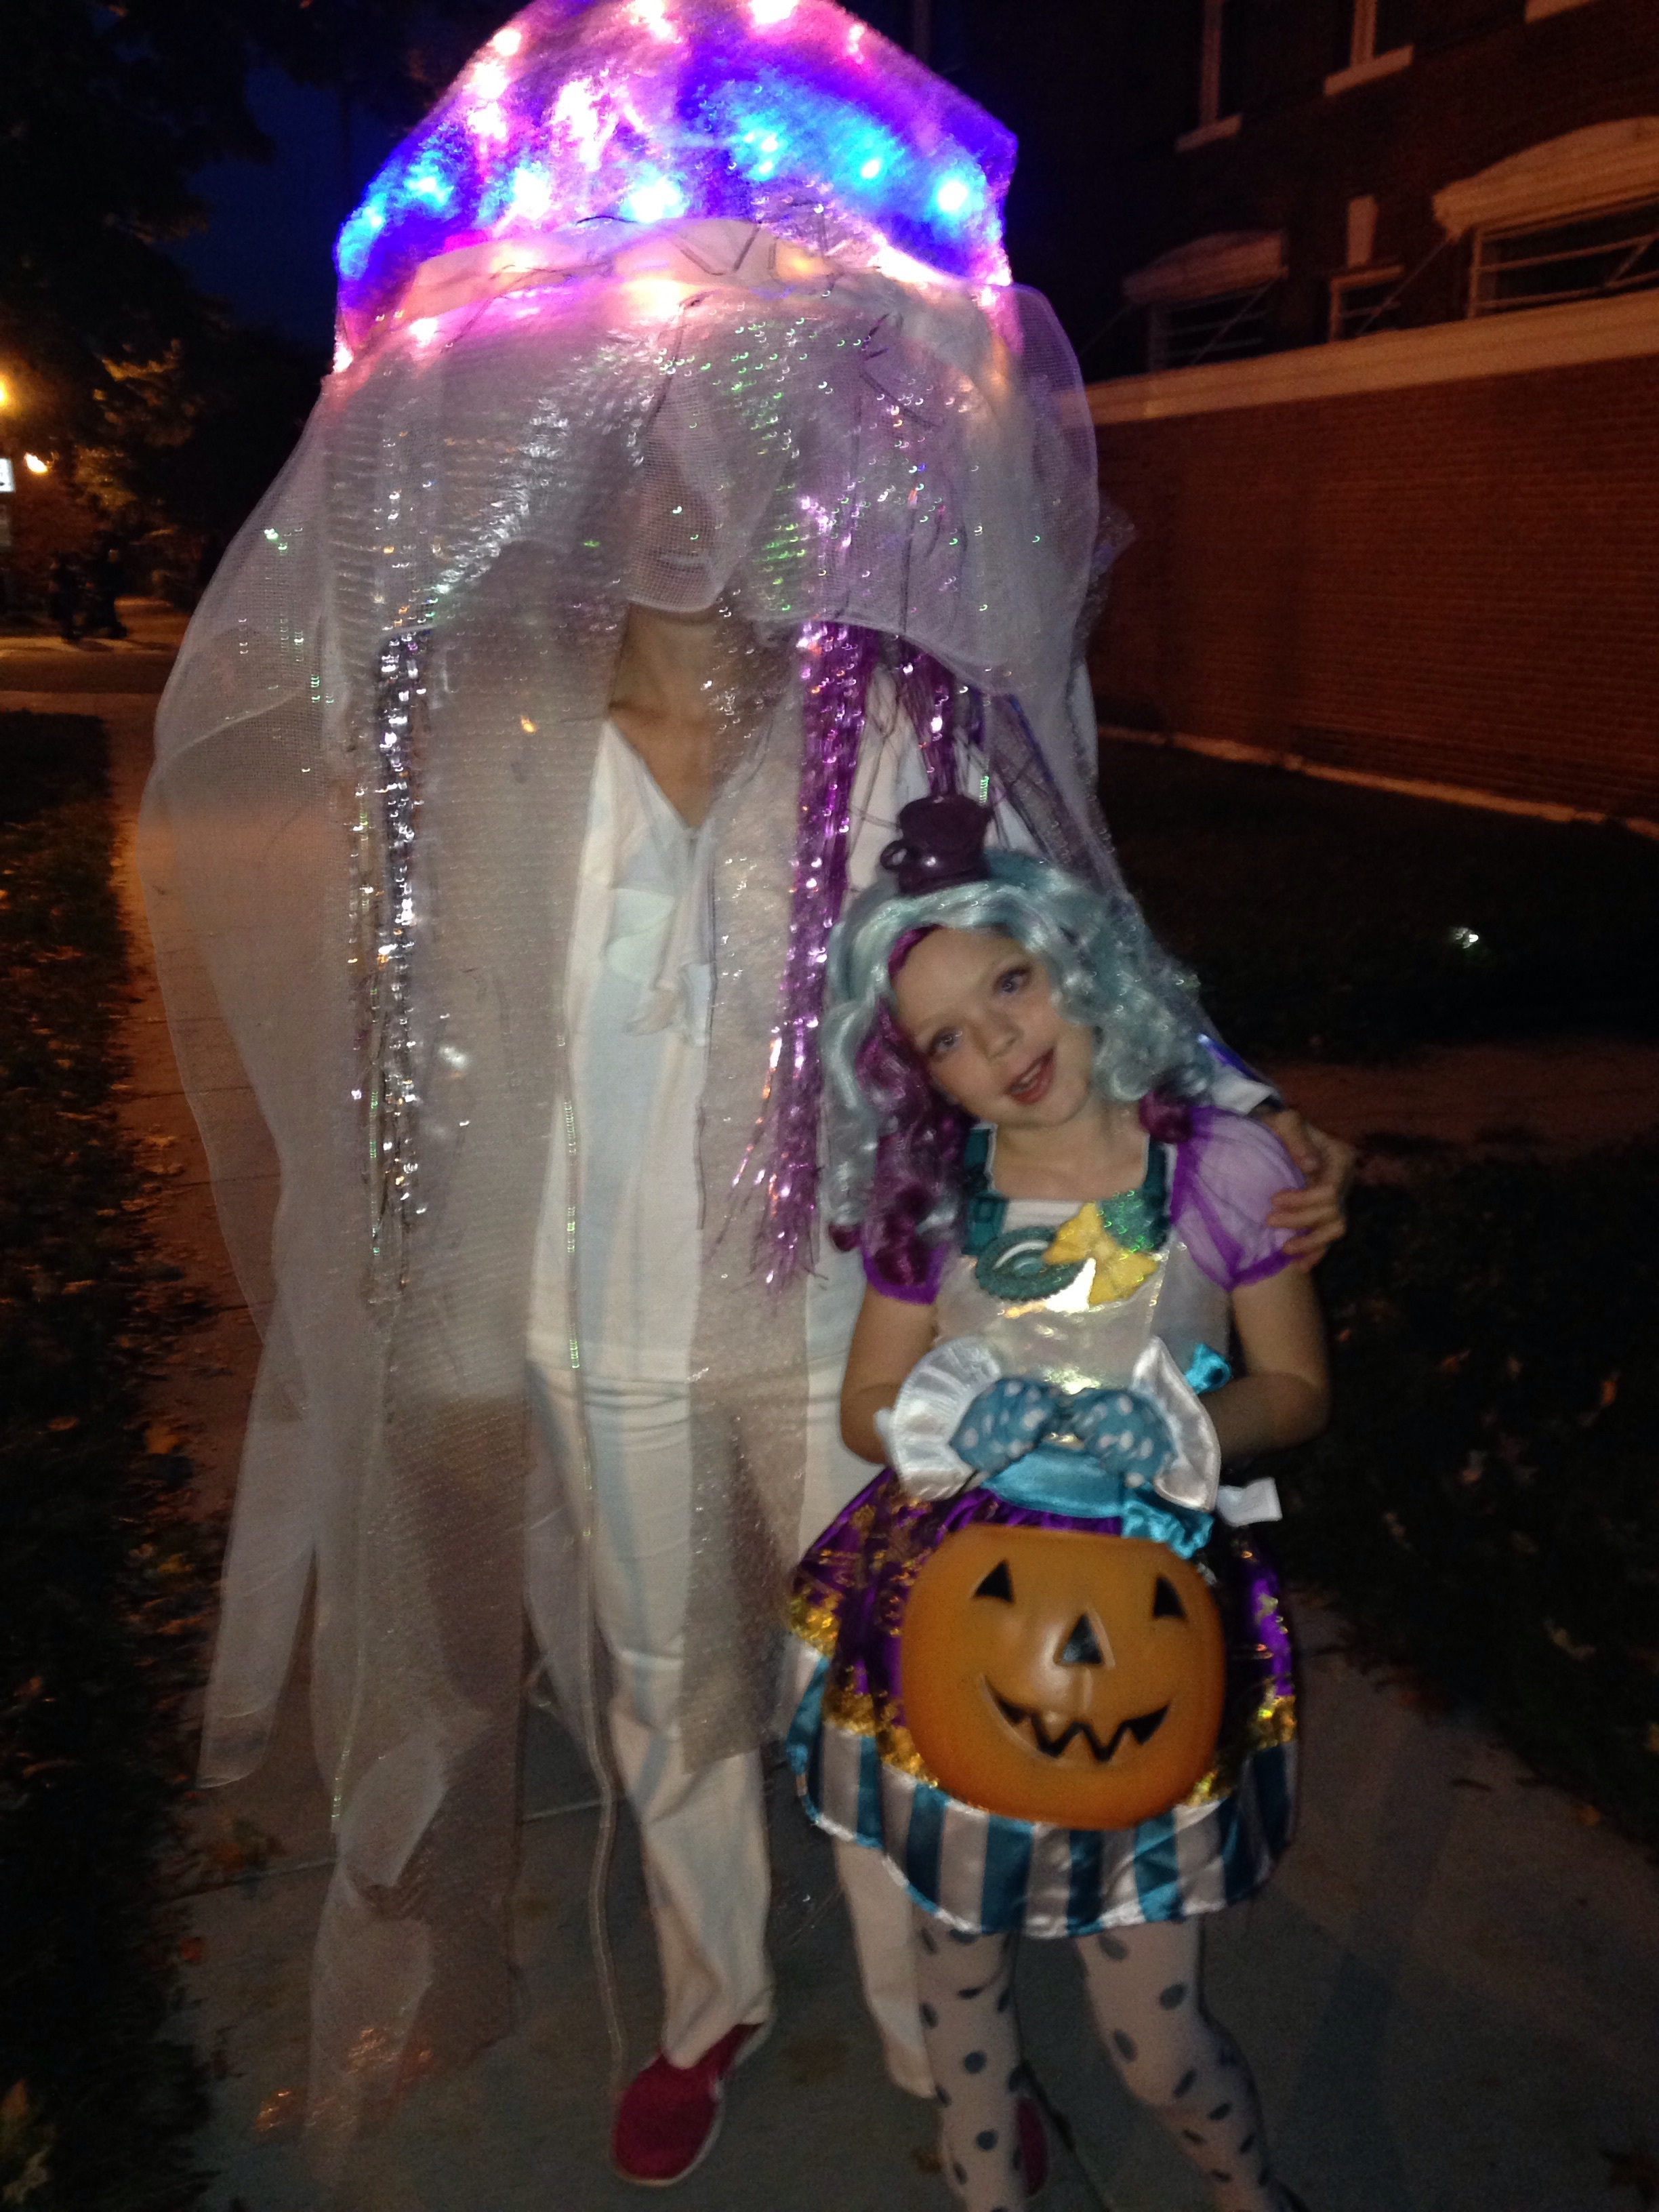 Here I am with my daughter on Halloween.